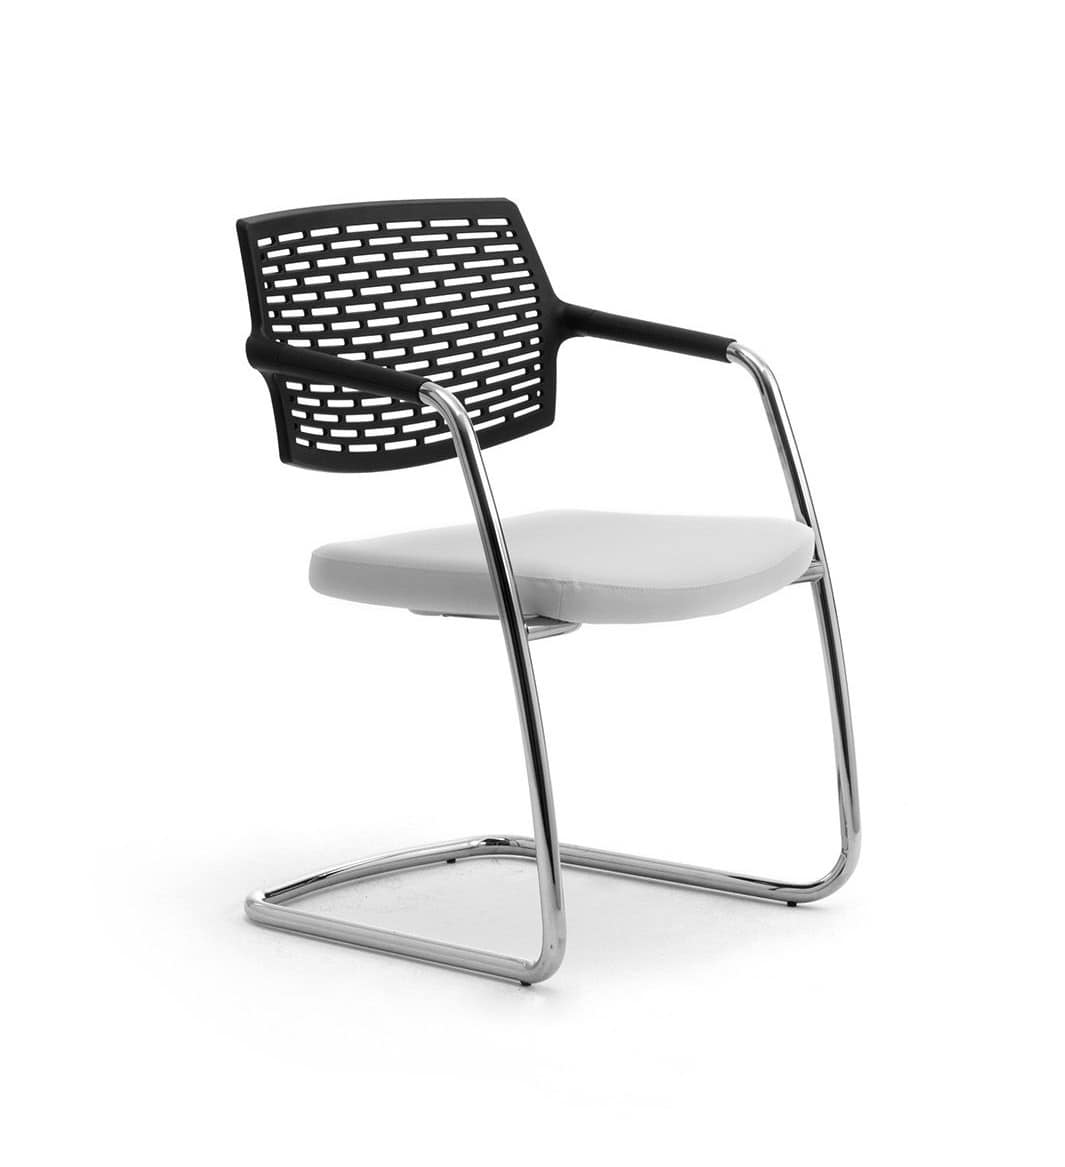 Spot 0570, Office chair with sled base, backrest in mesh